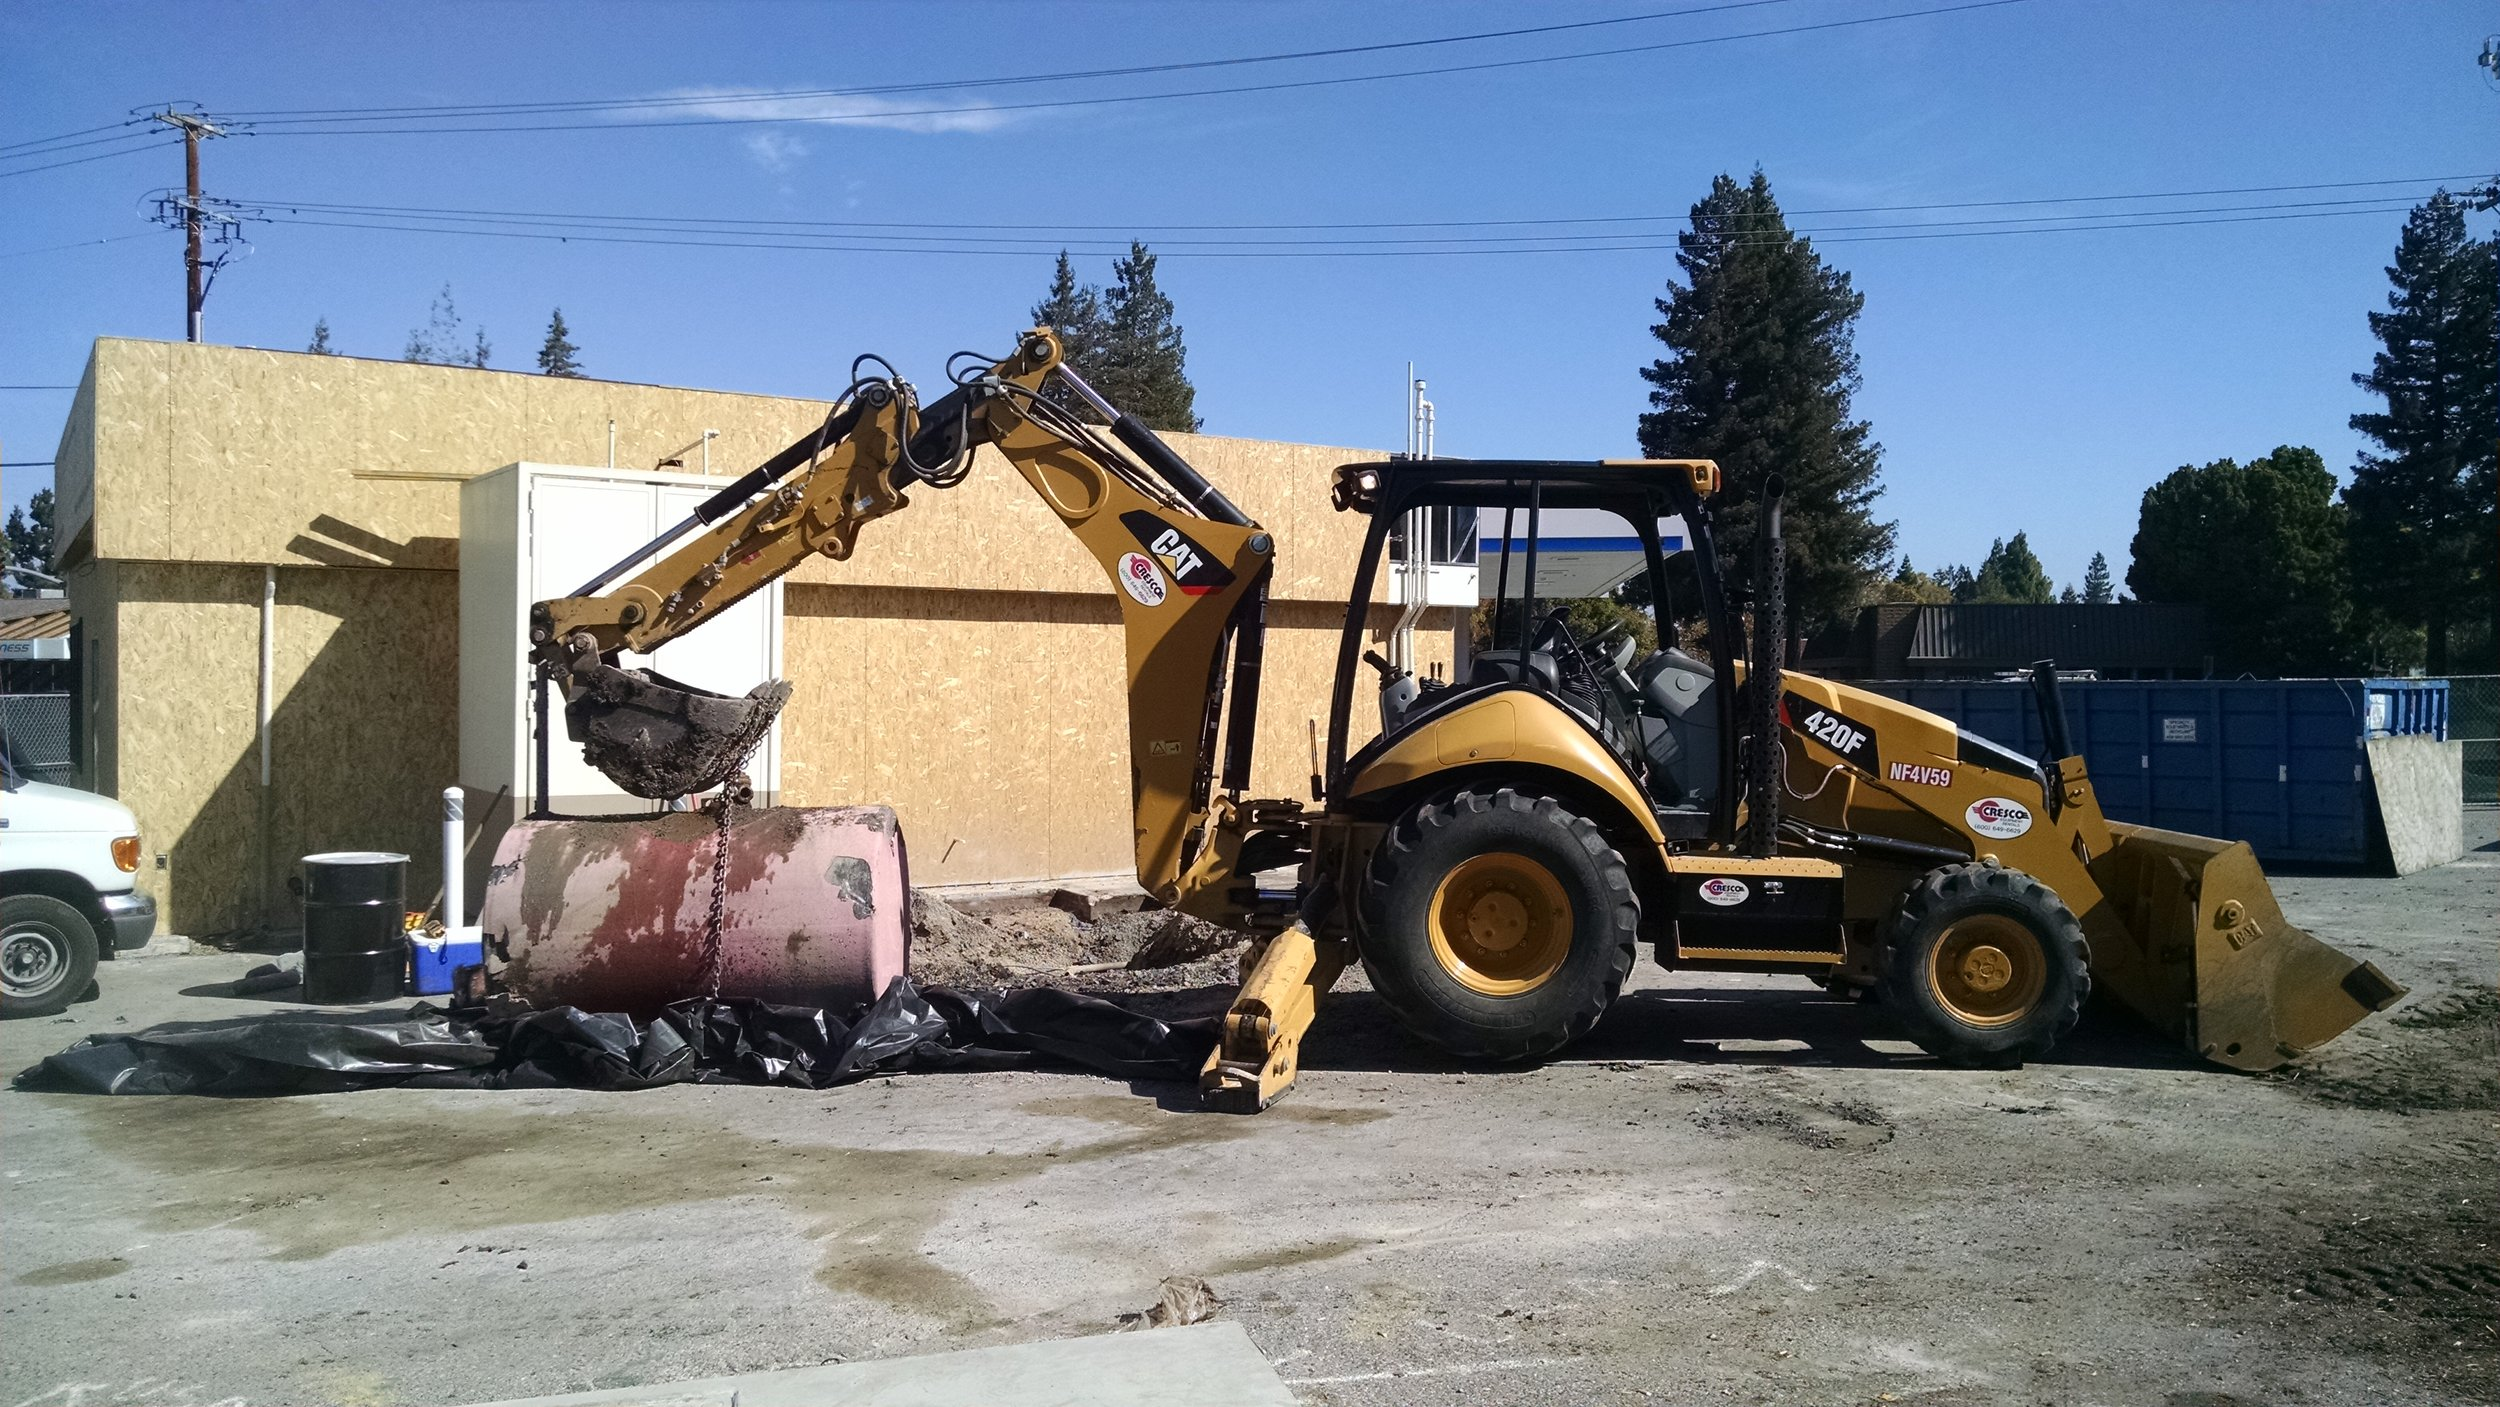 Service station upgrades, hoist removal, and waste oil underground storage tank removal